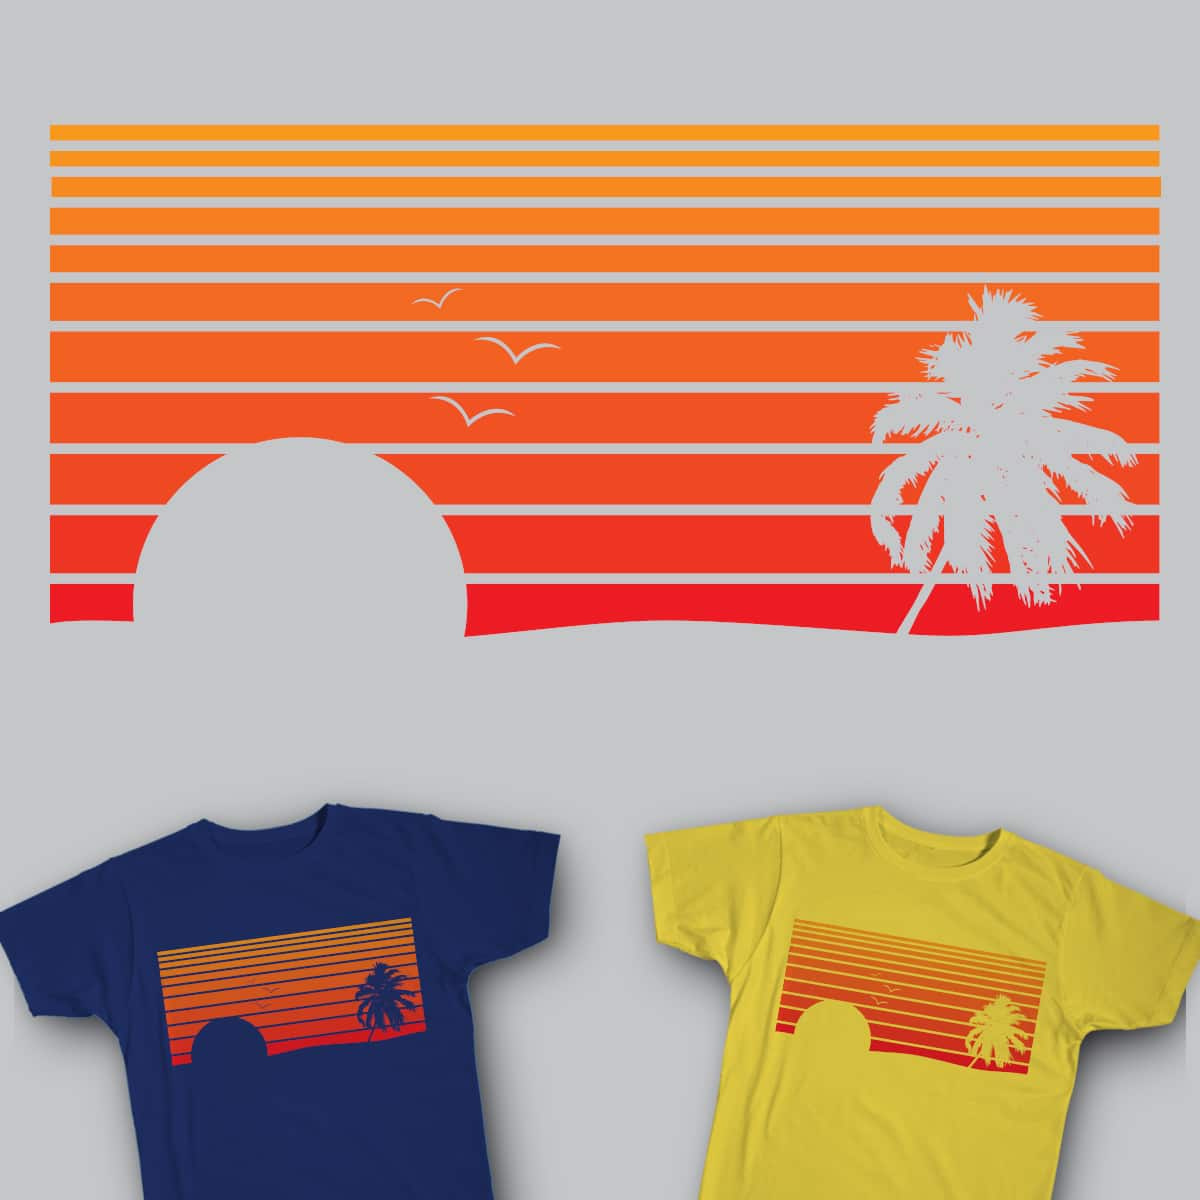 Sunset by Arturoml92 on Threadless